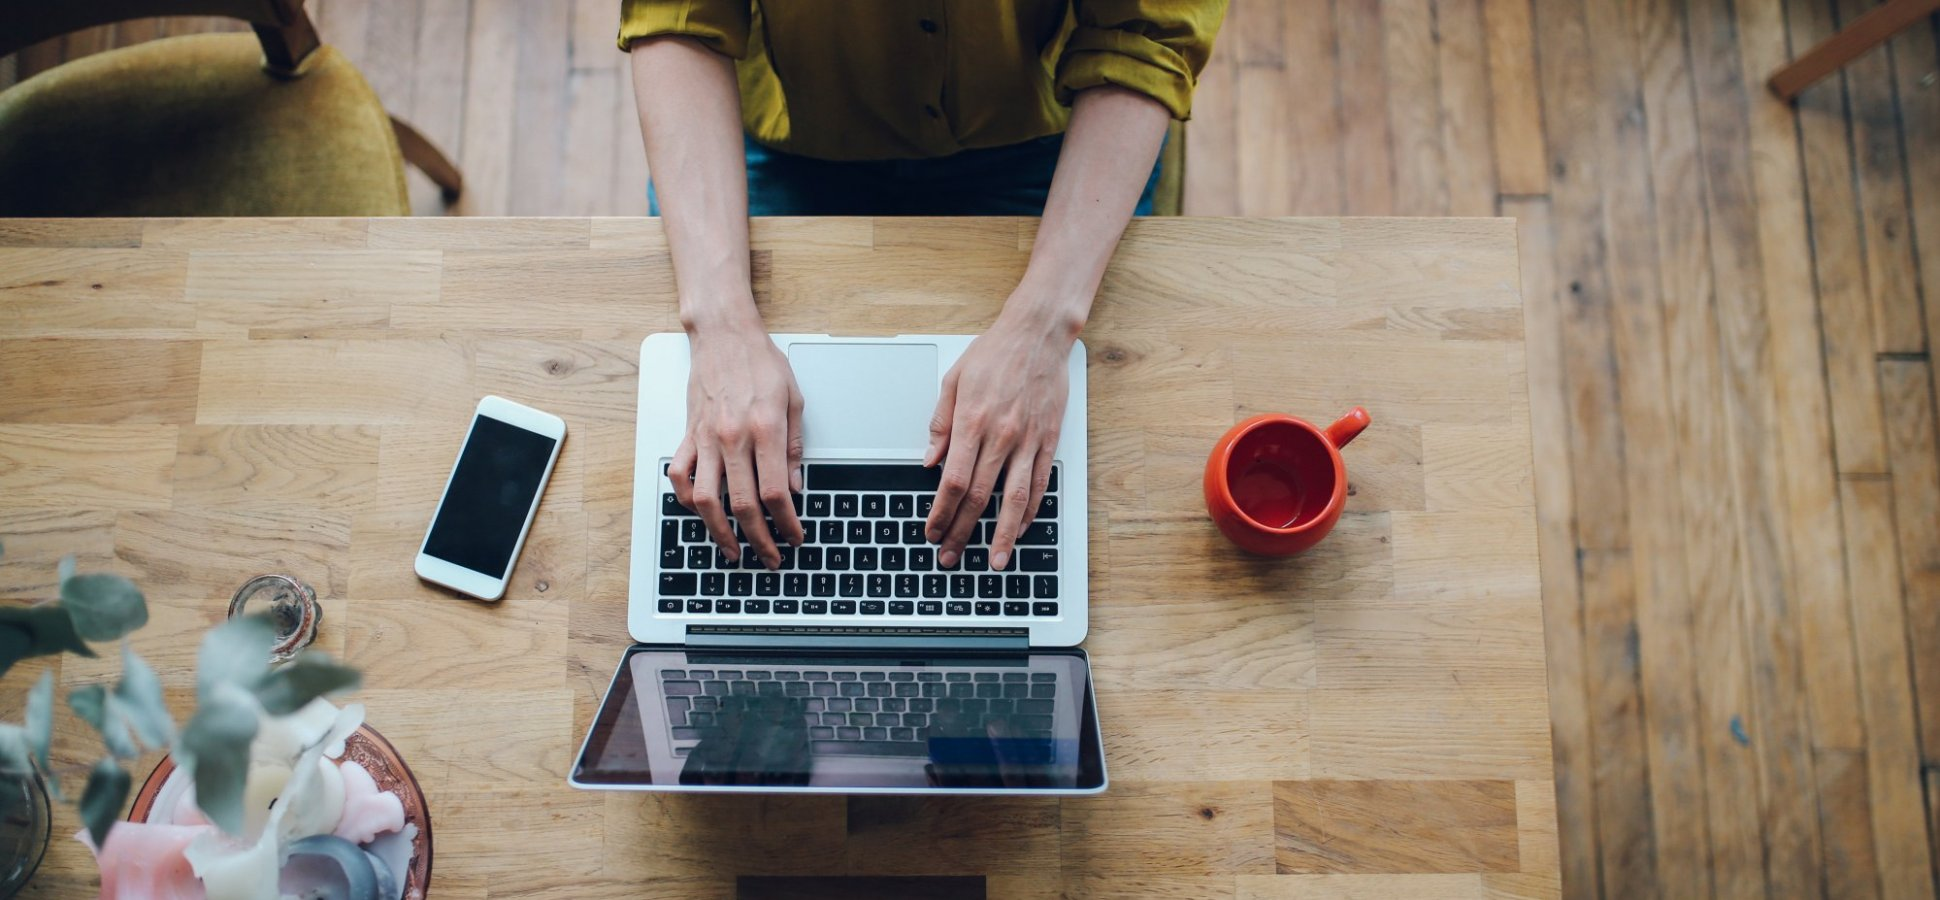 11 First Sentences That Guarantee the Rest of Your Email Won't Get Read